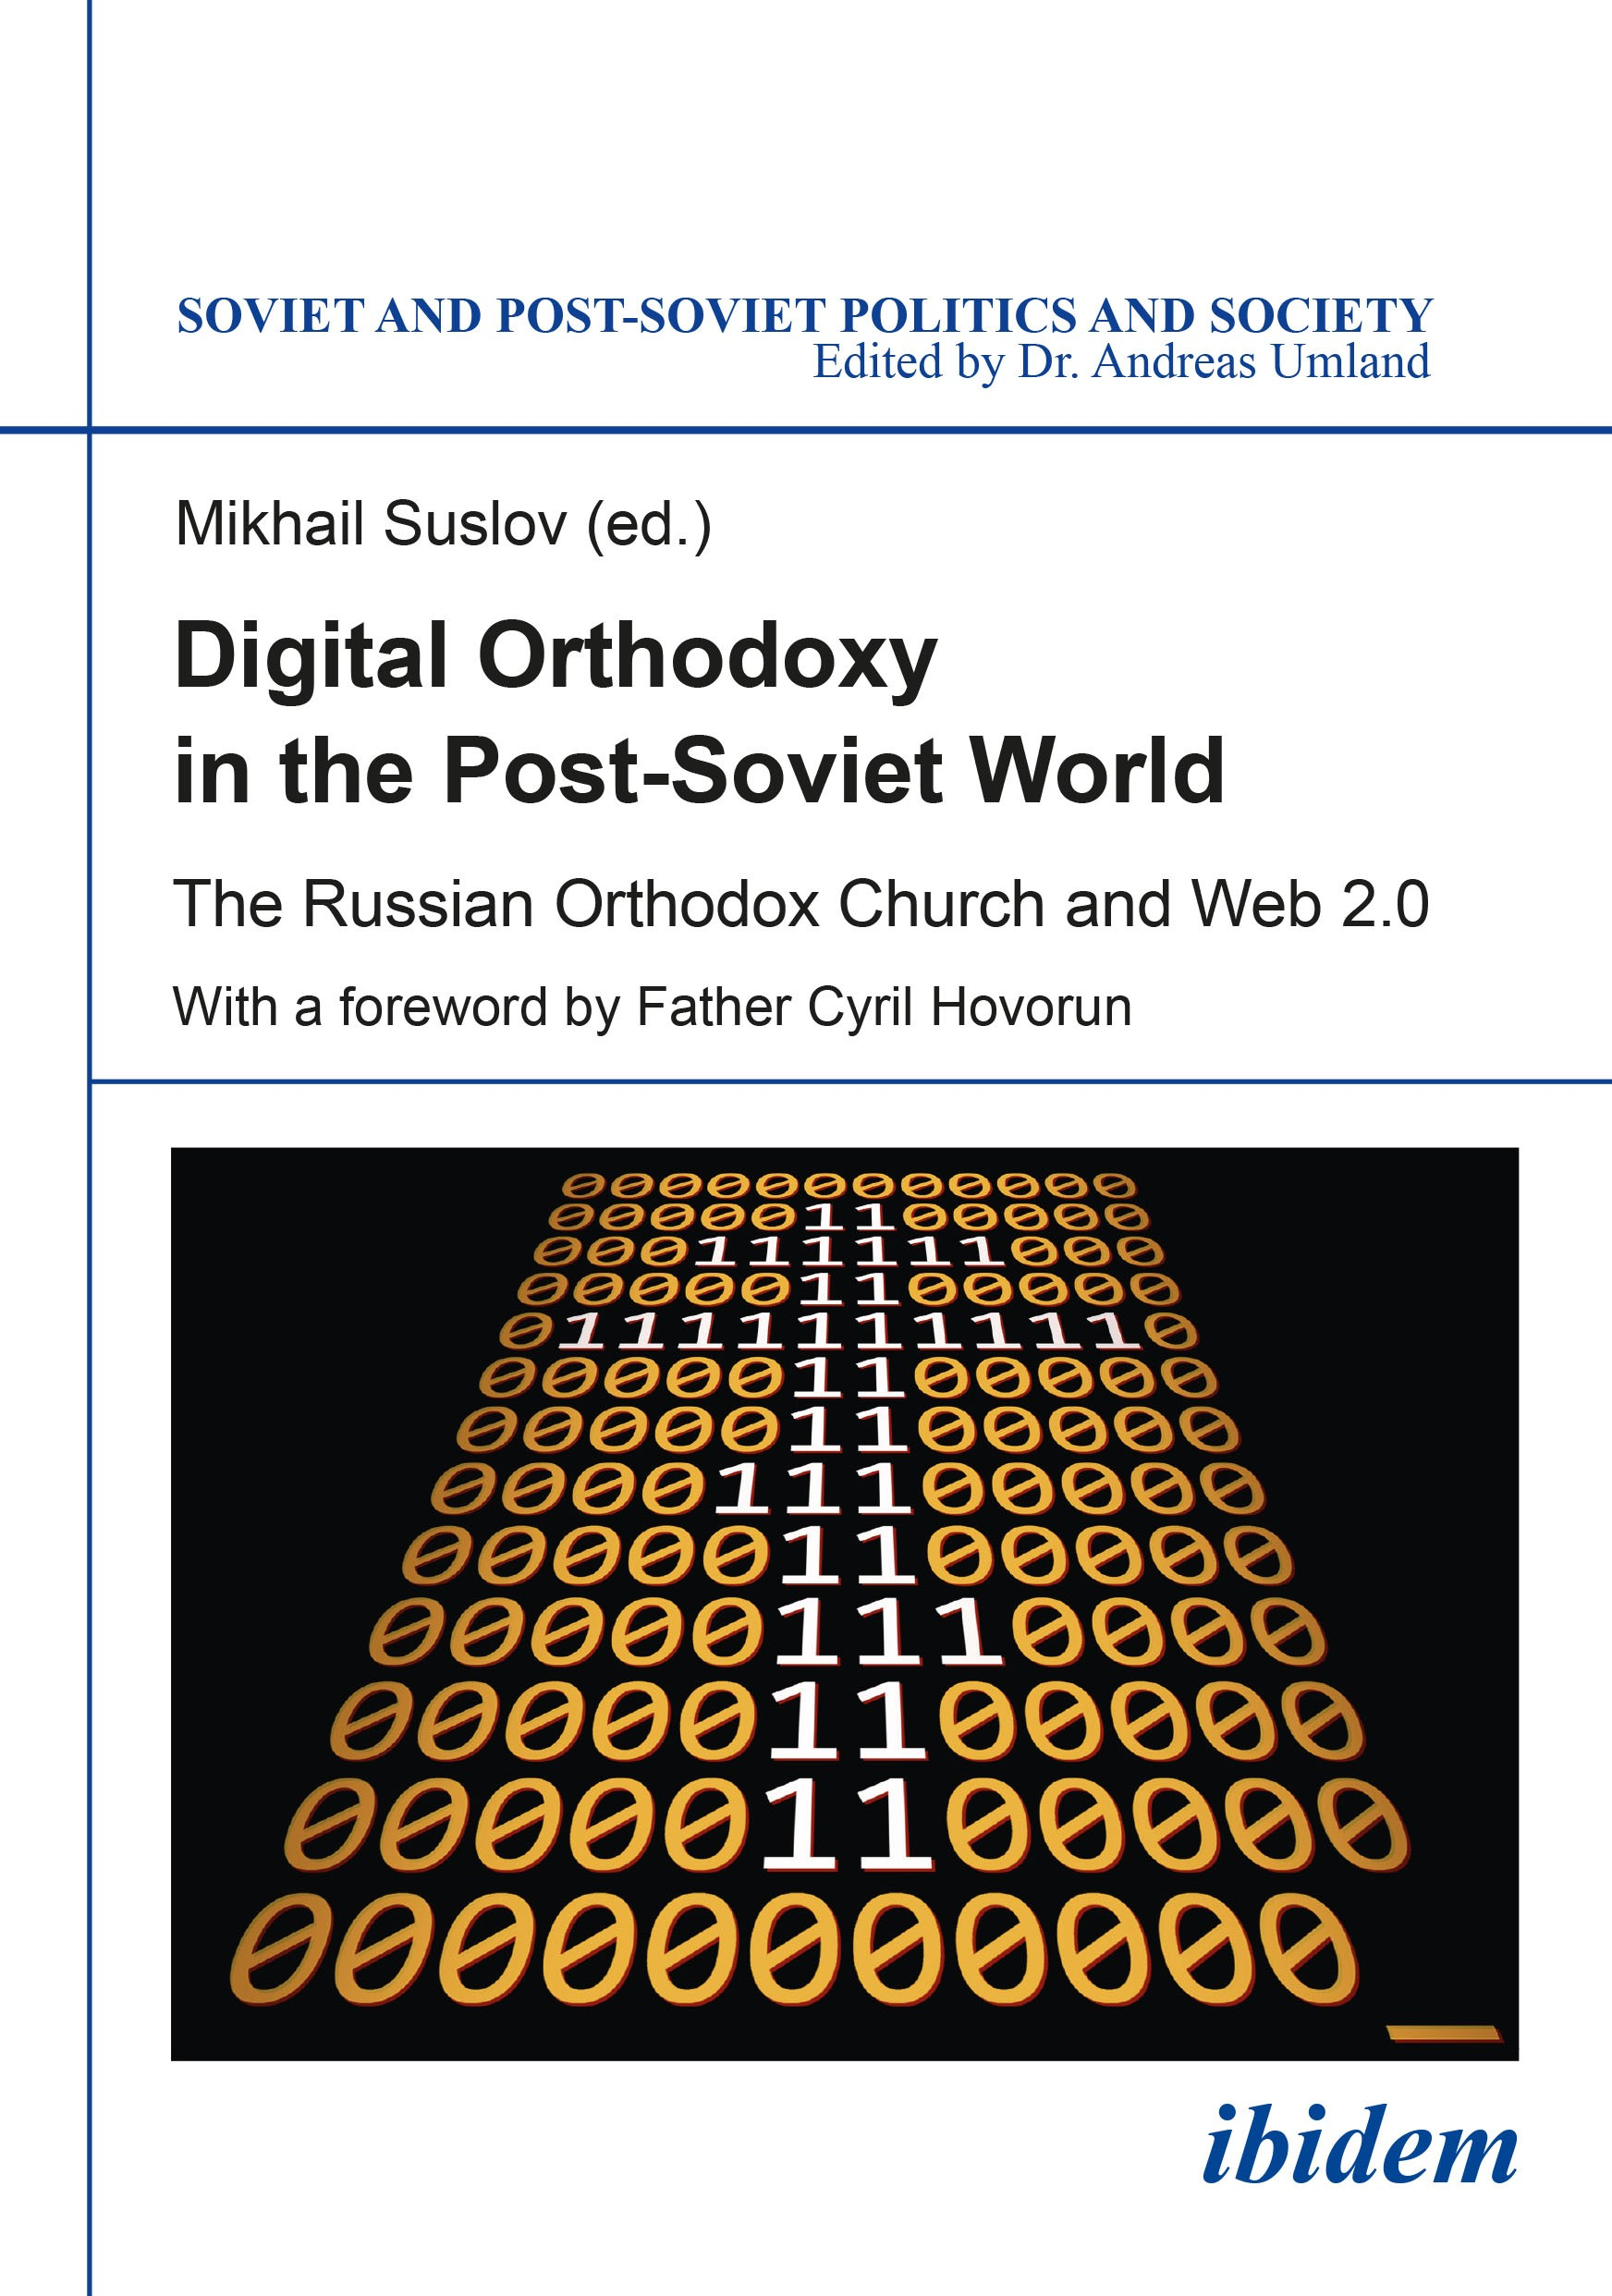 Digital Orthodoxy in the Post-Soviet World